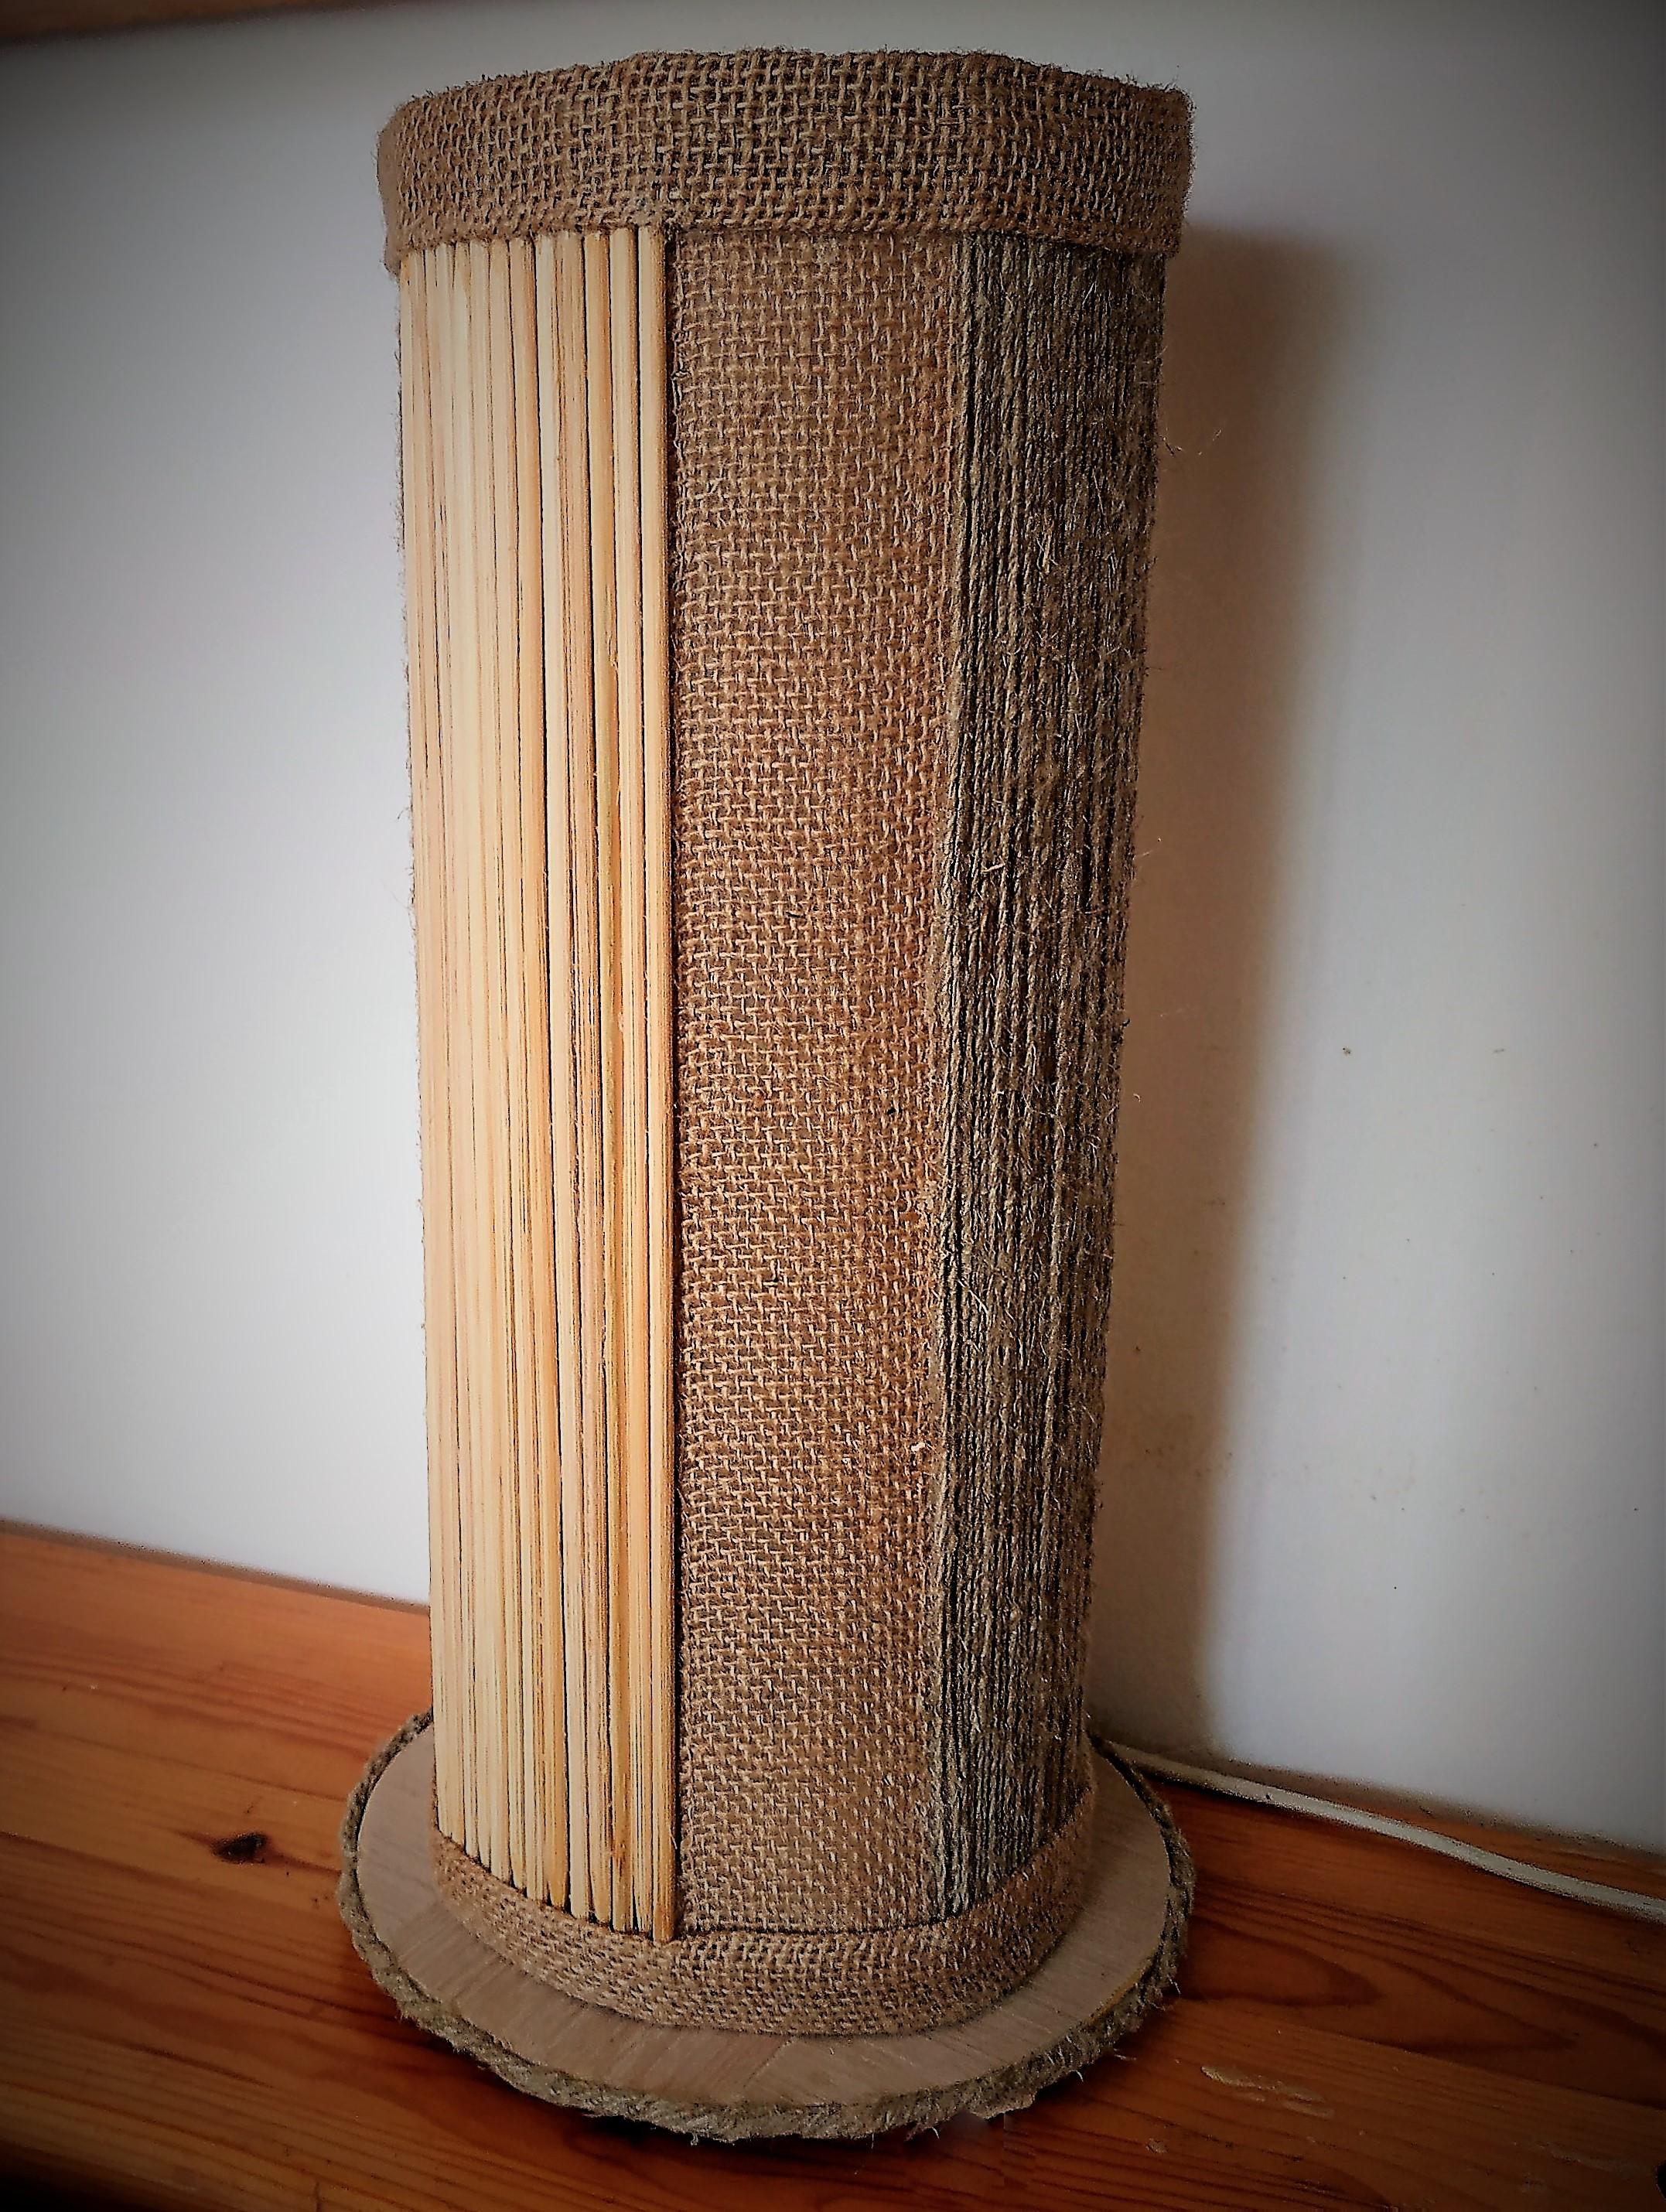 Table lamp in eco-style